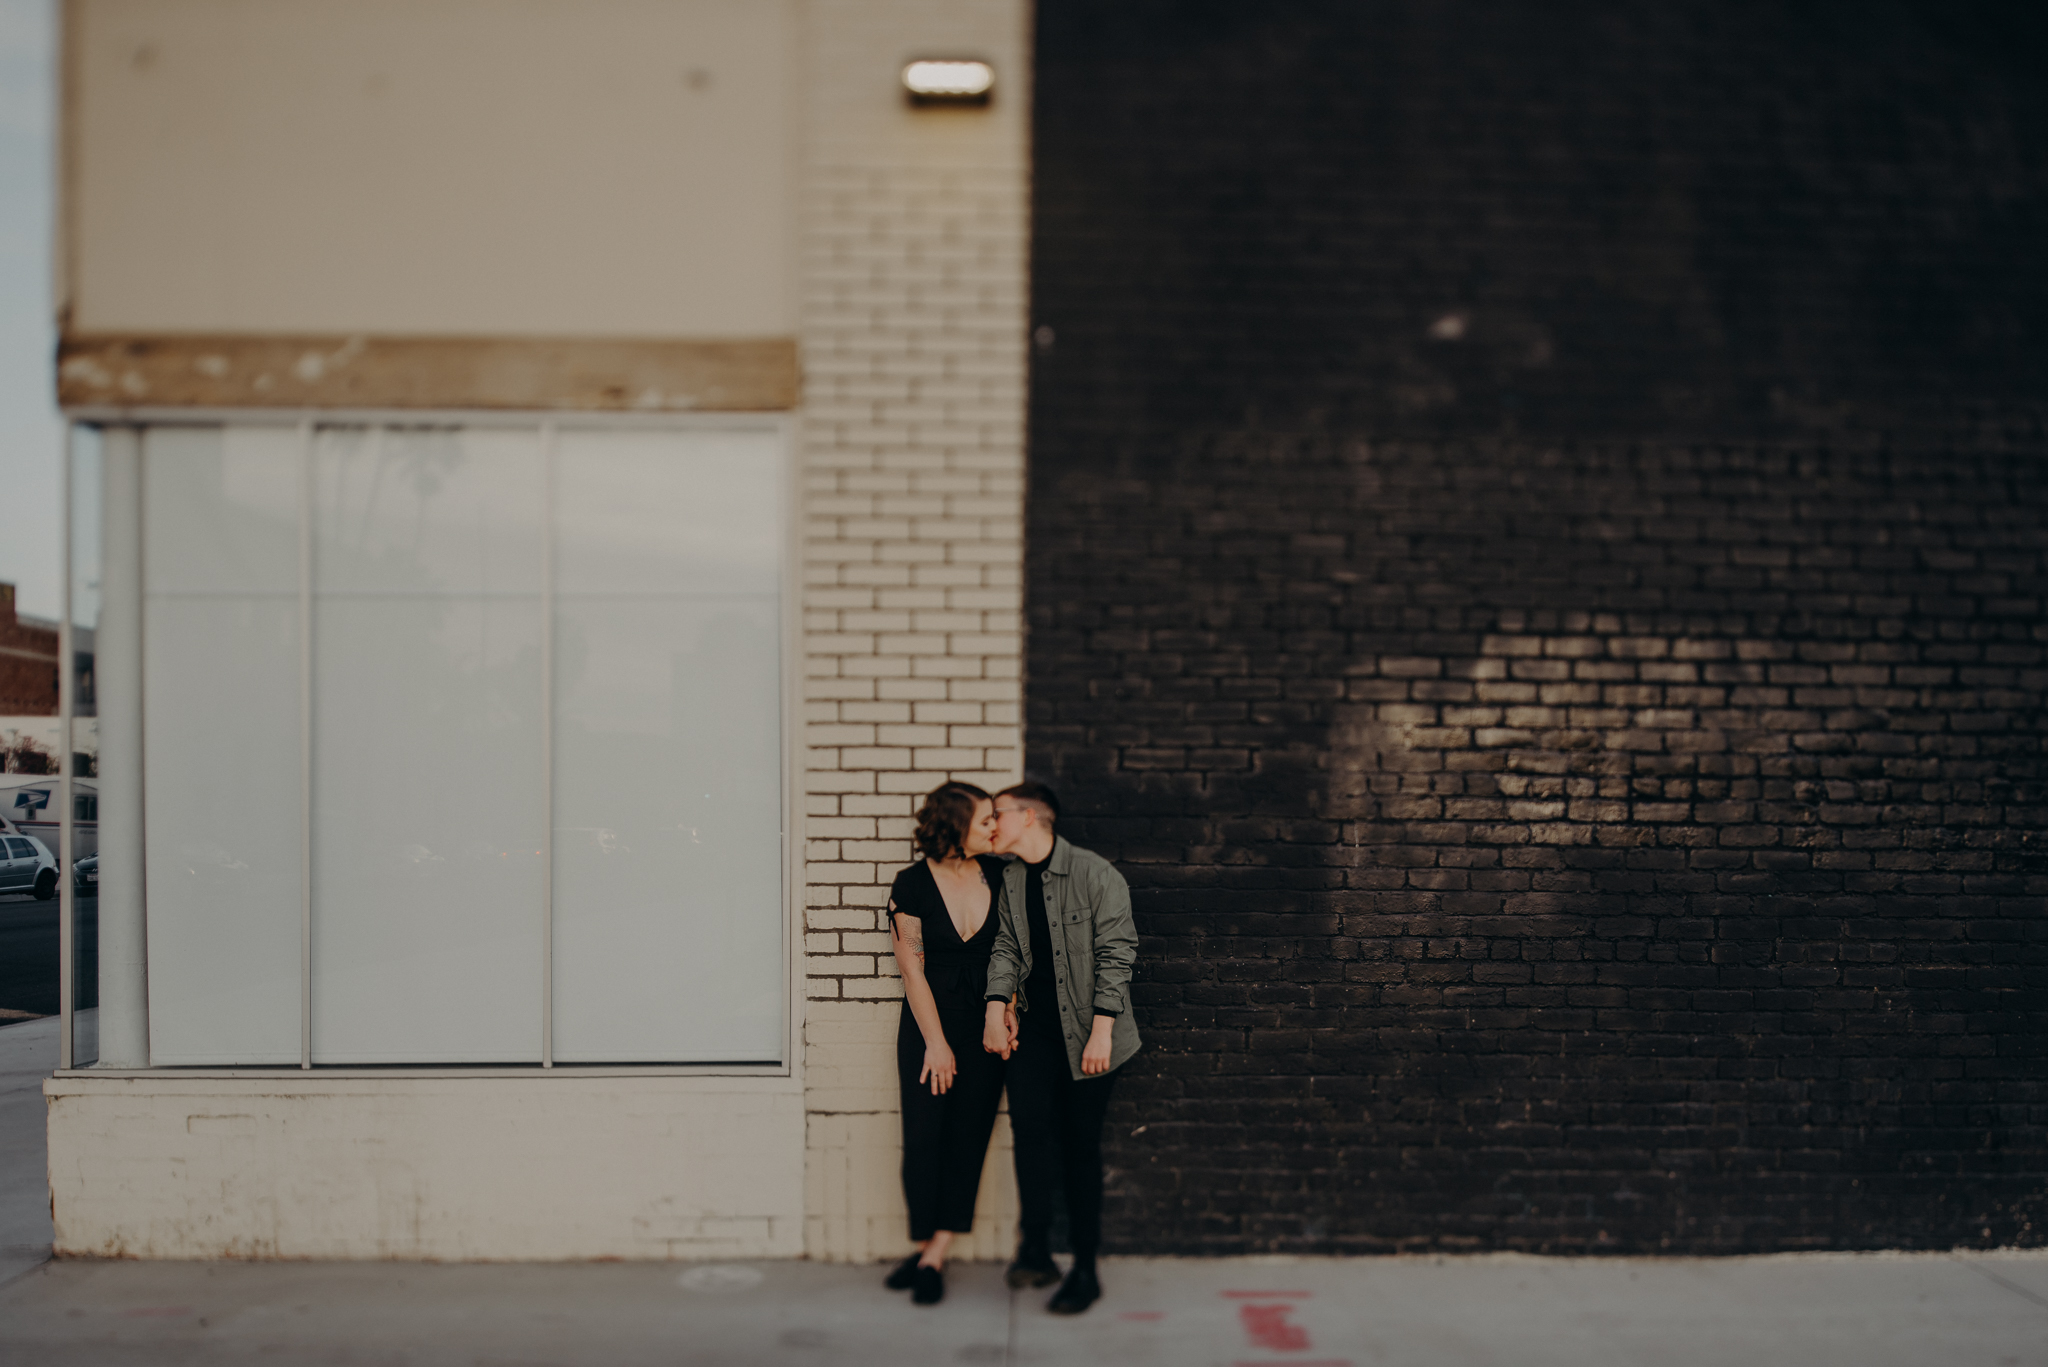 LGBTQ wedding photographer in los angeles - long beach engagement session - isaiahandtaylor.com-30.jpg